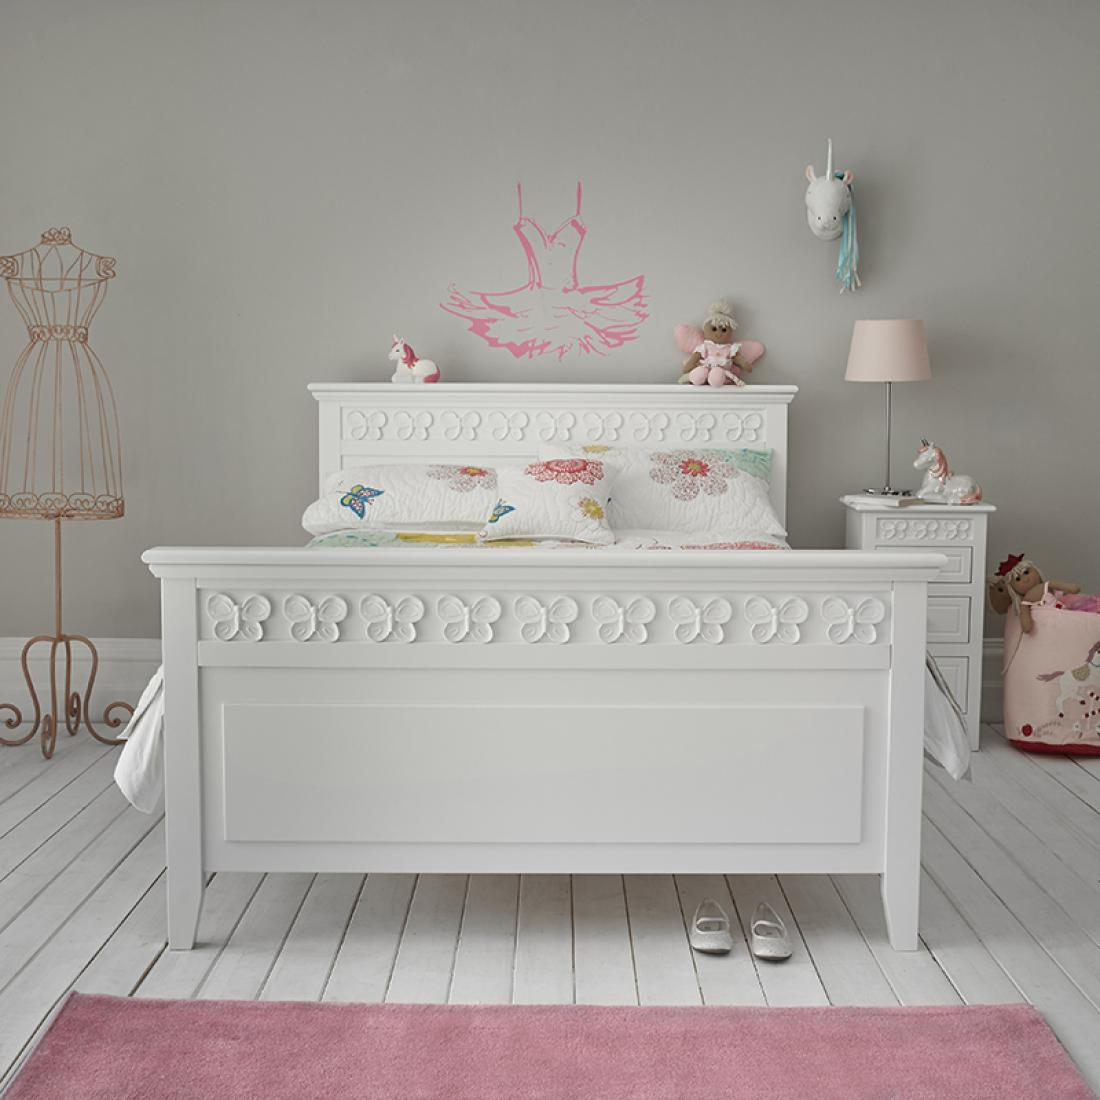 Double Beds Florence Flutterby Double Bed Childrens Double Bed Kids Double